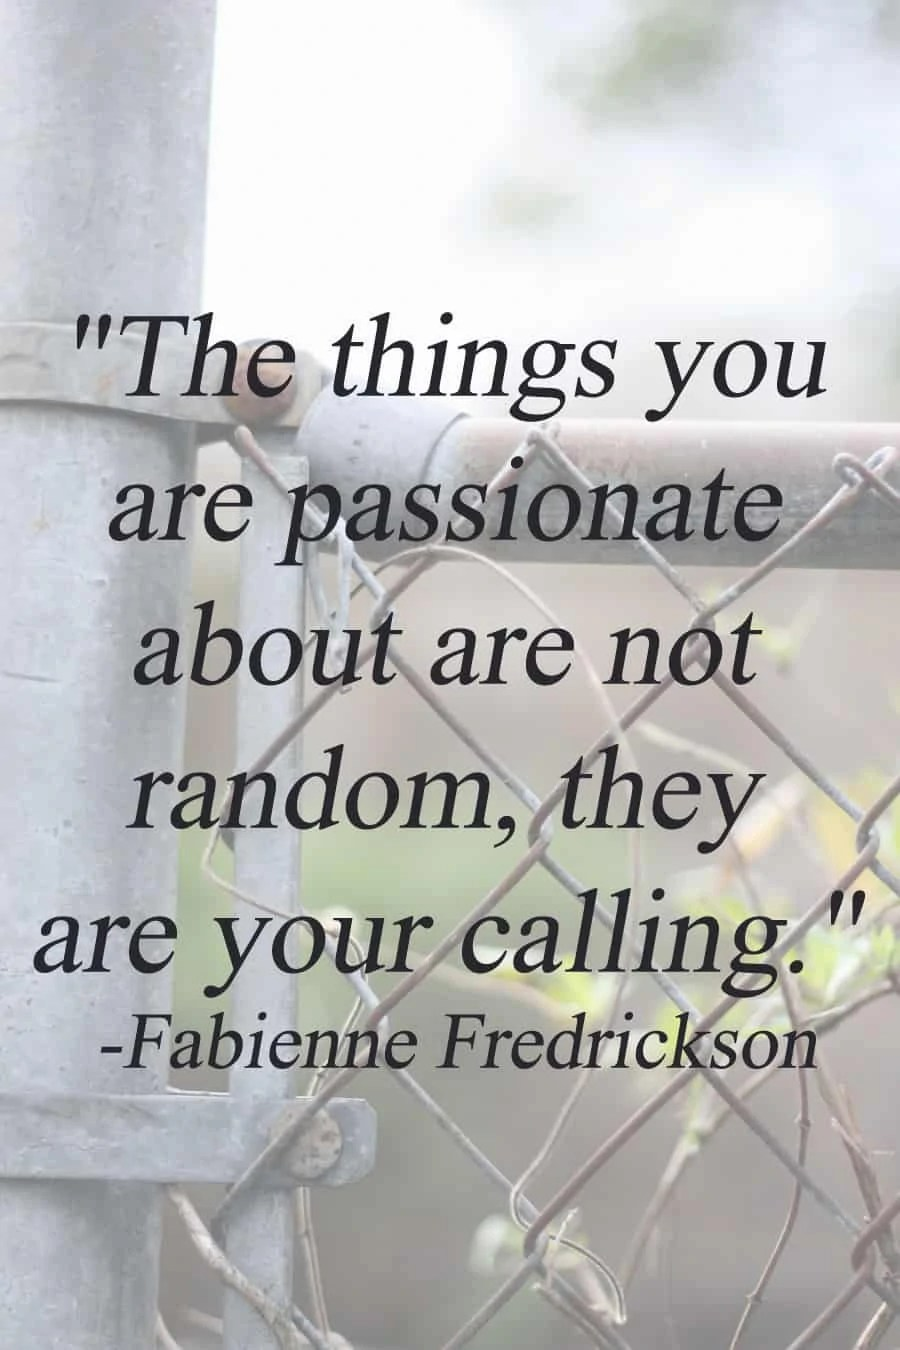 """""""The things you are passionate about are not random, they are your calling."""" - Fabienne Fredrickson   via The Spirited Violet"""